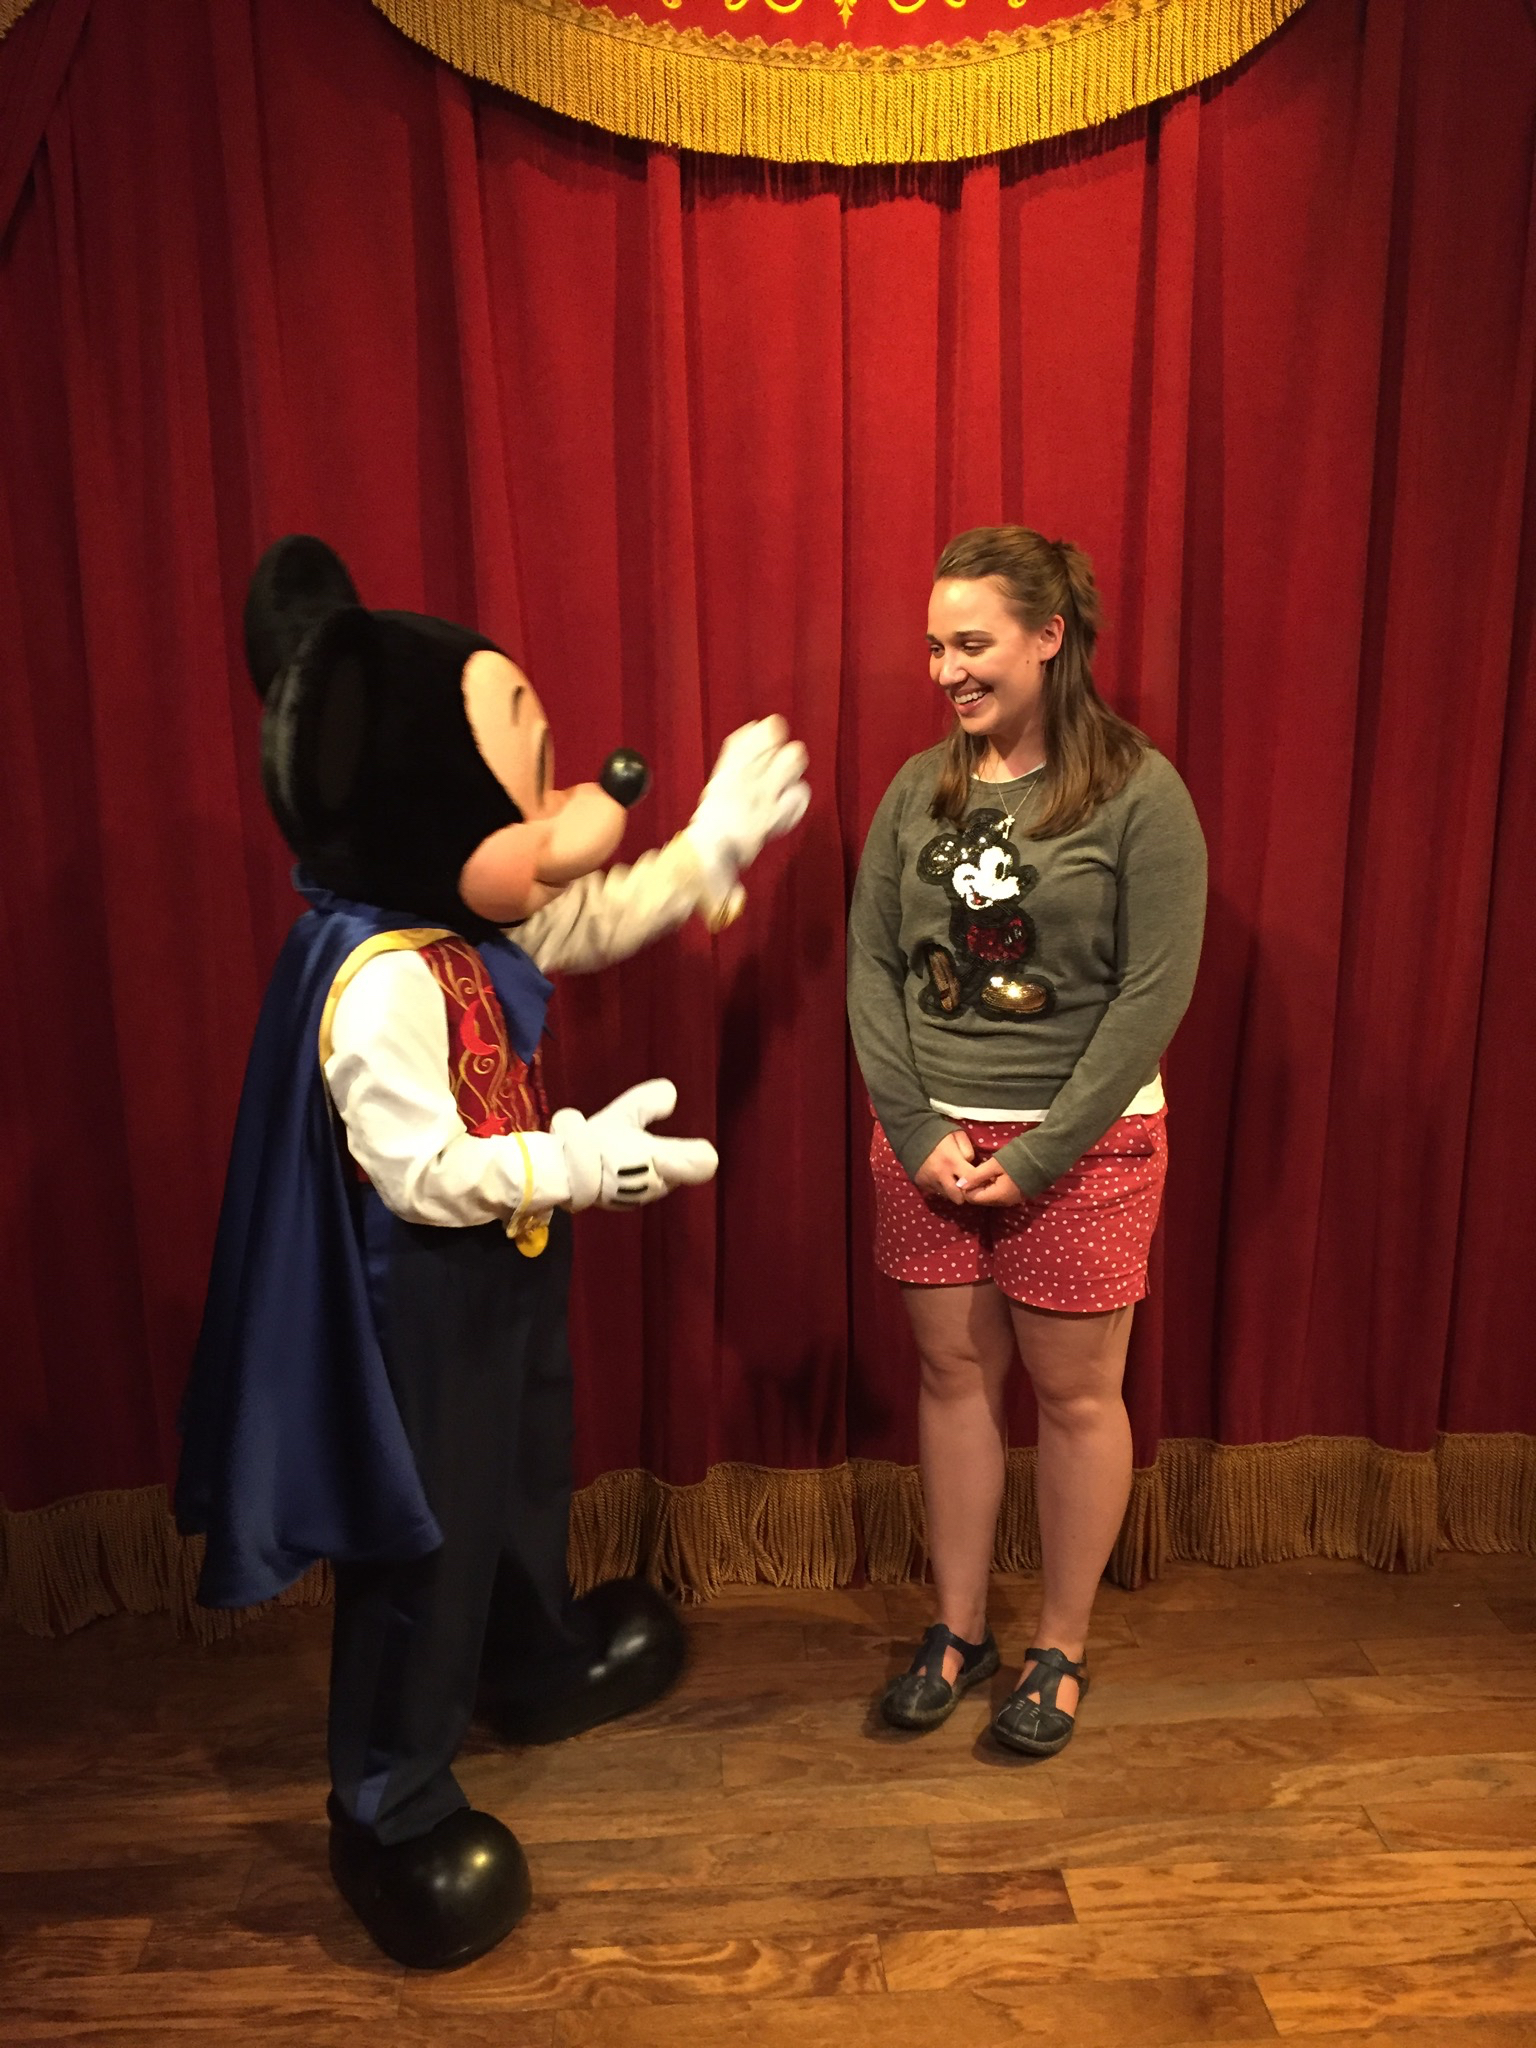 My first time meeting Mickey in Magic Kingdom.